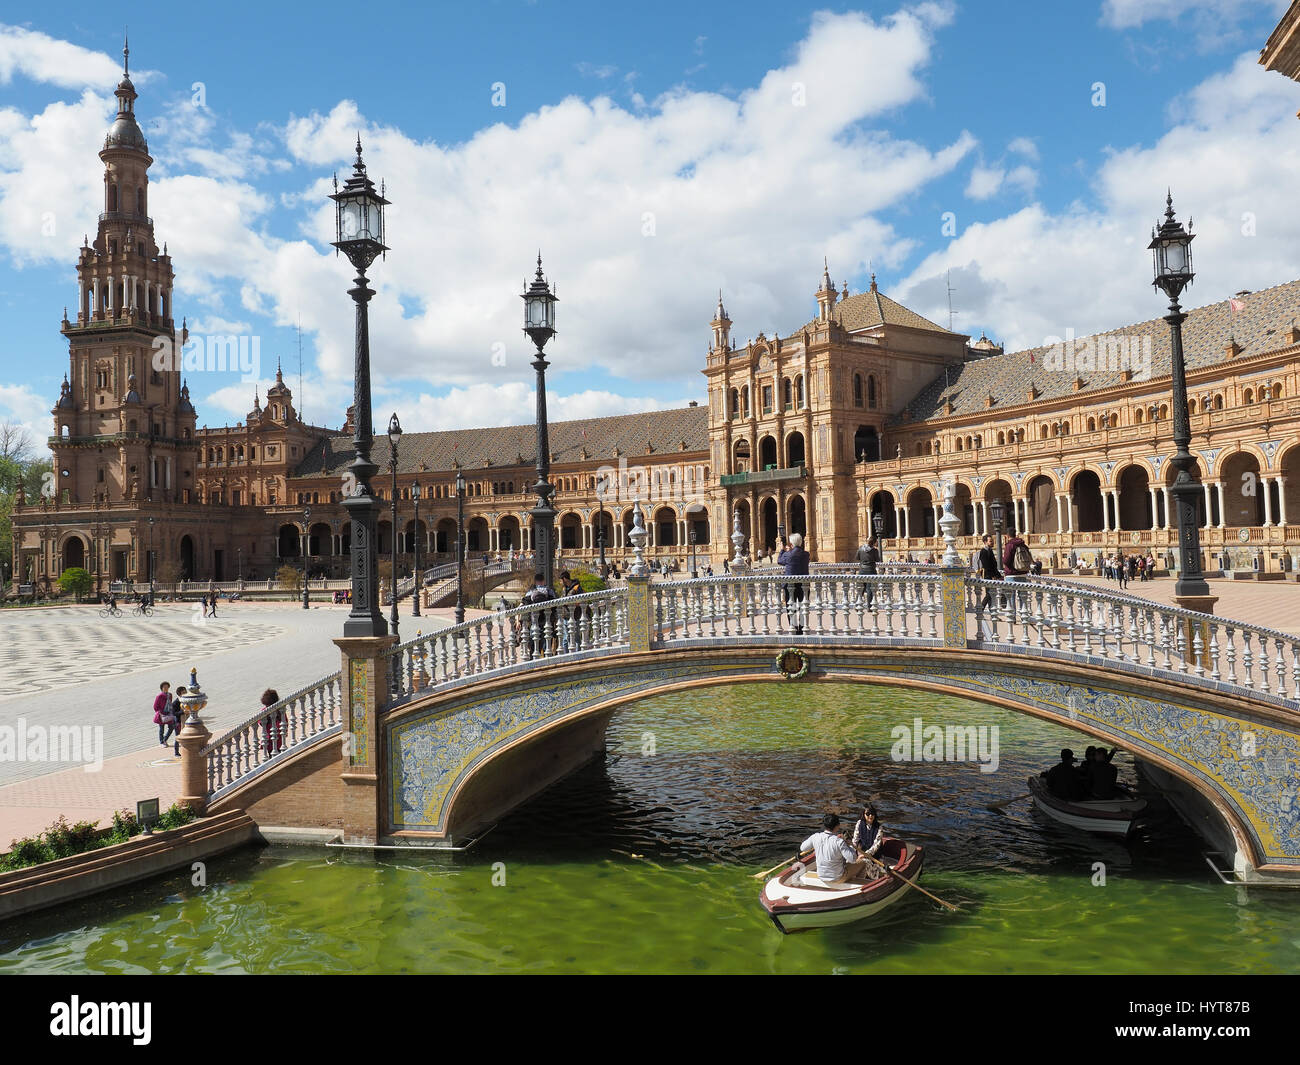 View of a bridge over a canal in the Plaza de Espana in Seville Sapin - Stock Image